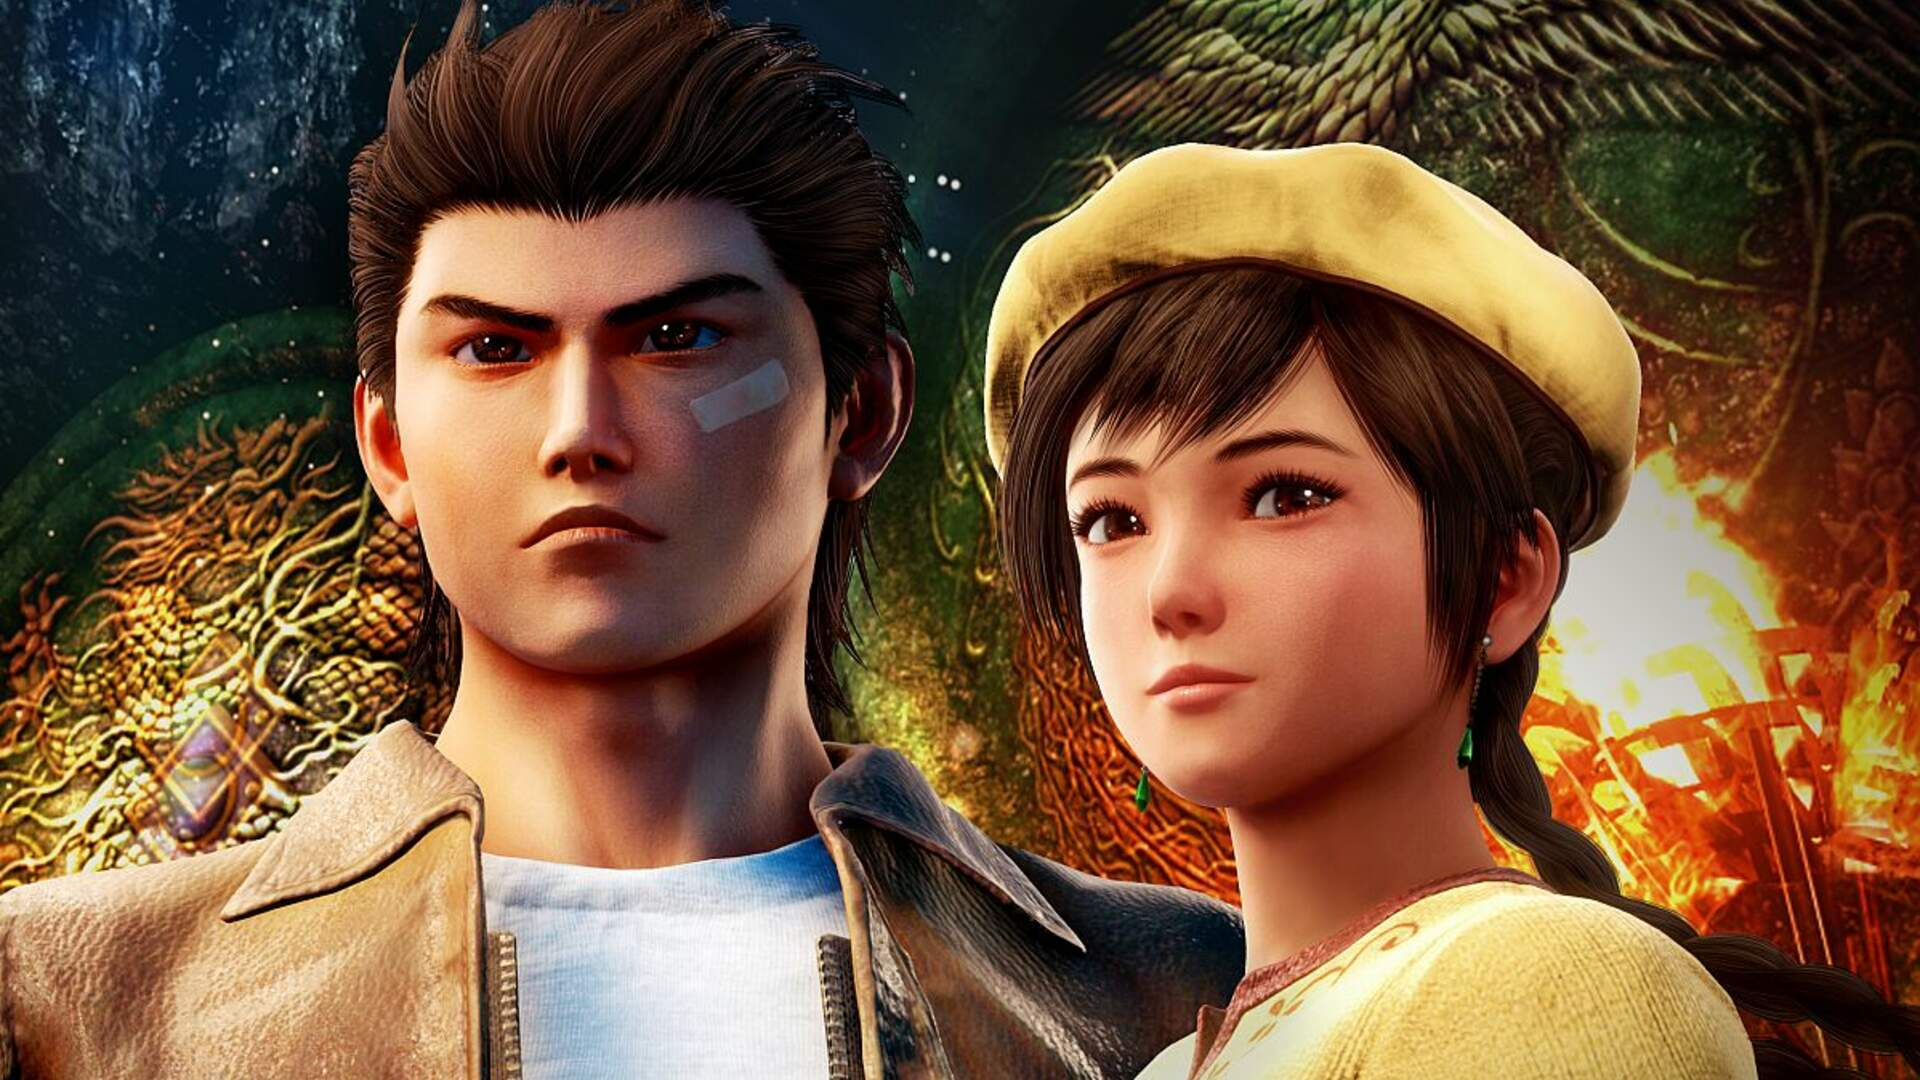 Yu Suzuki is Already Looking Ahead to Shenmue 4